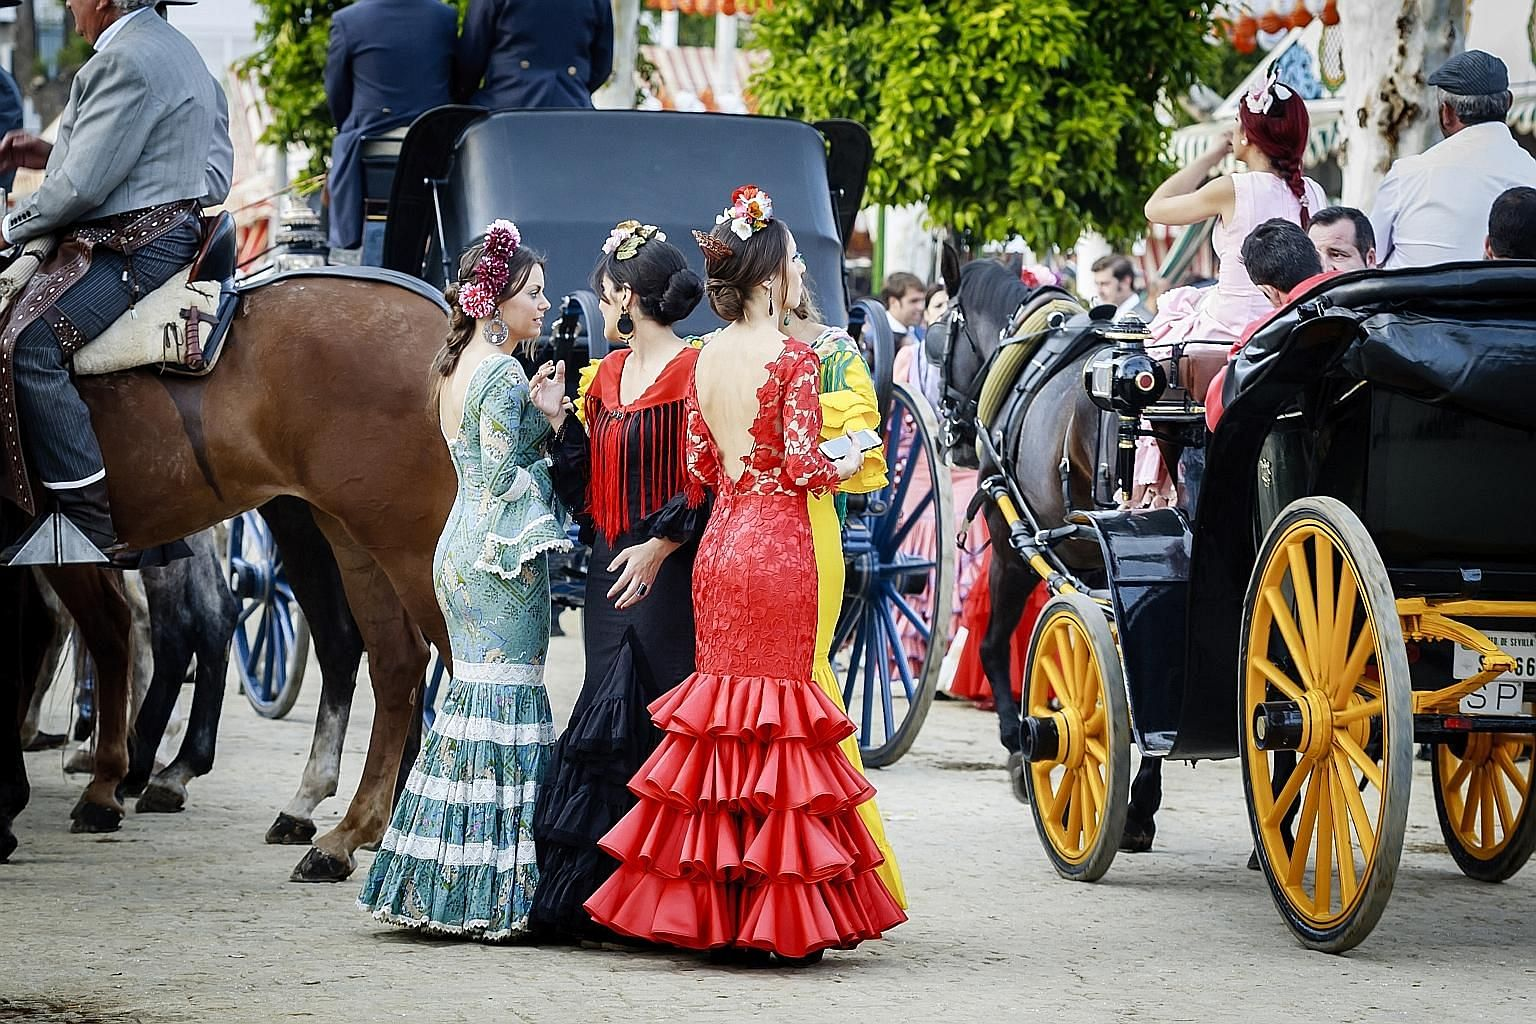 Top: Women in traditional flamenco dress at the Feria de Abril, or April Fair, in Seville, Spain. Above: Bask in Native American music and culture at the New Orleans Jazz & Heritage Festival.